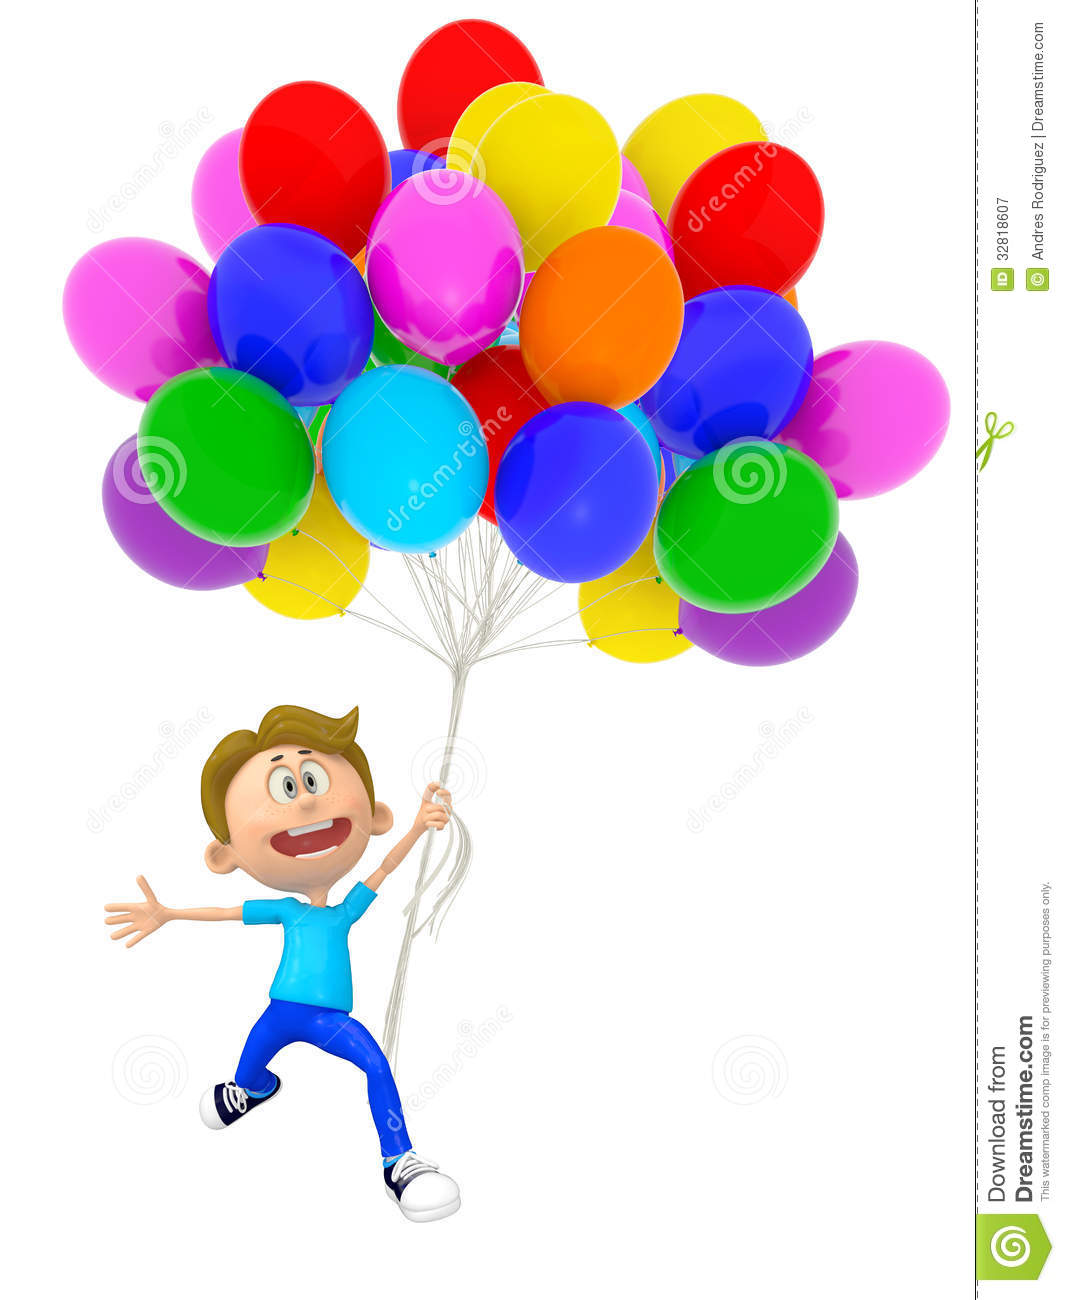 shower wheel chair desk red 3d boy with balloons stock illustration. image of child - 32818607